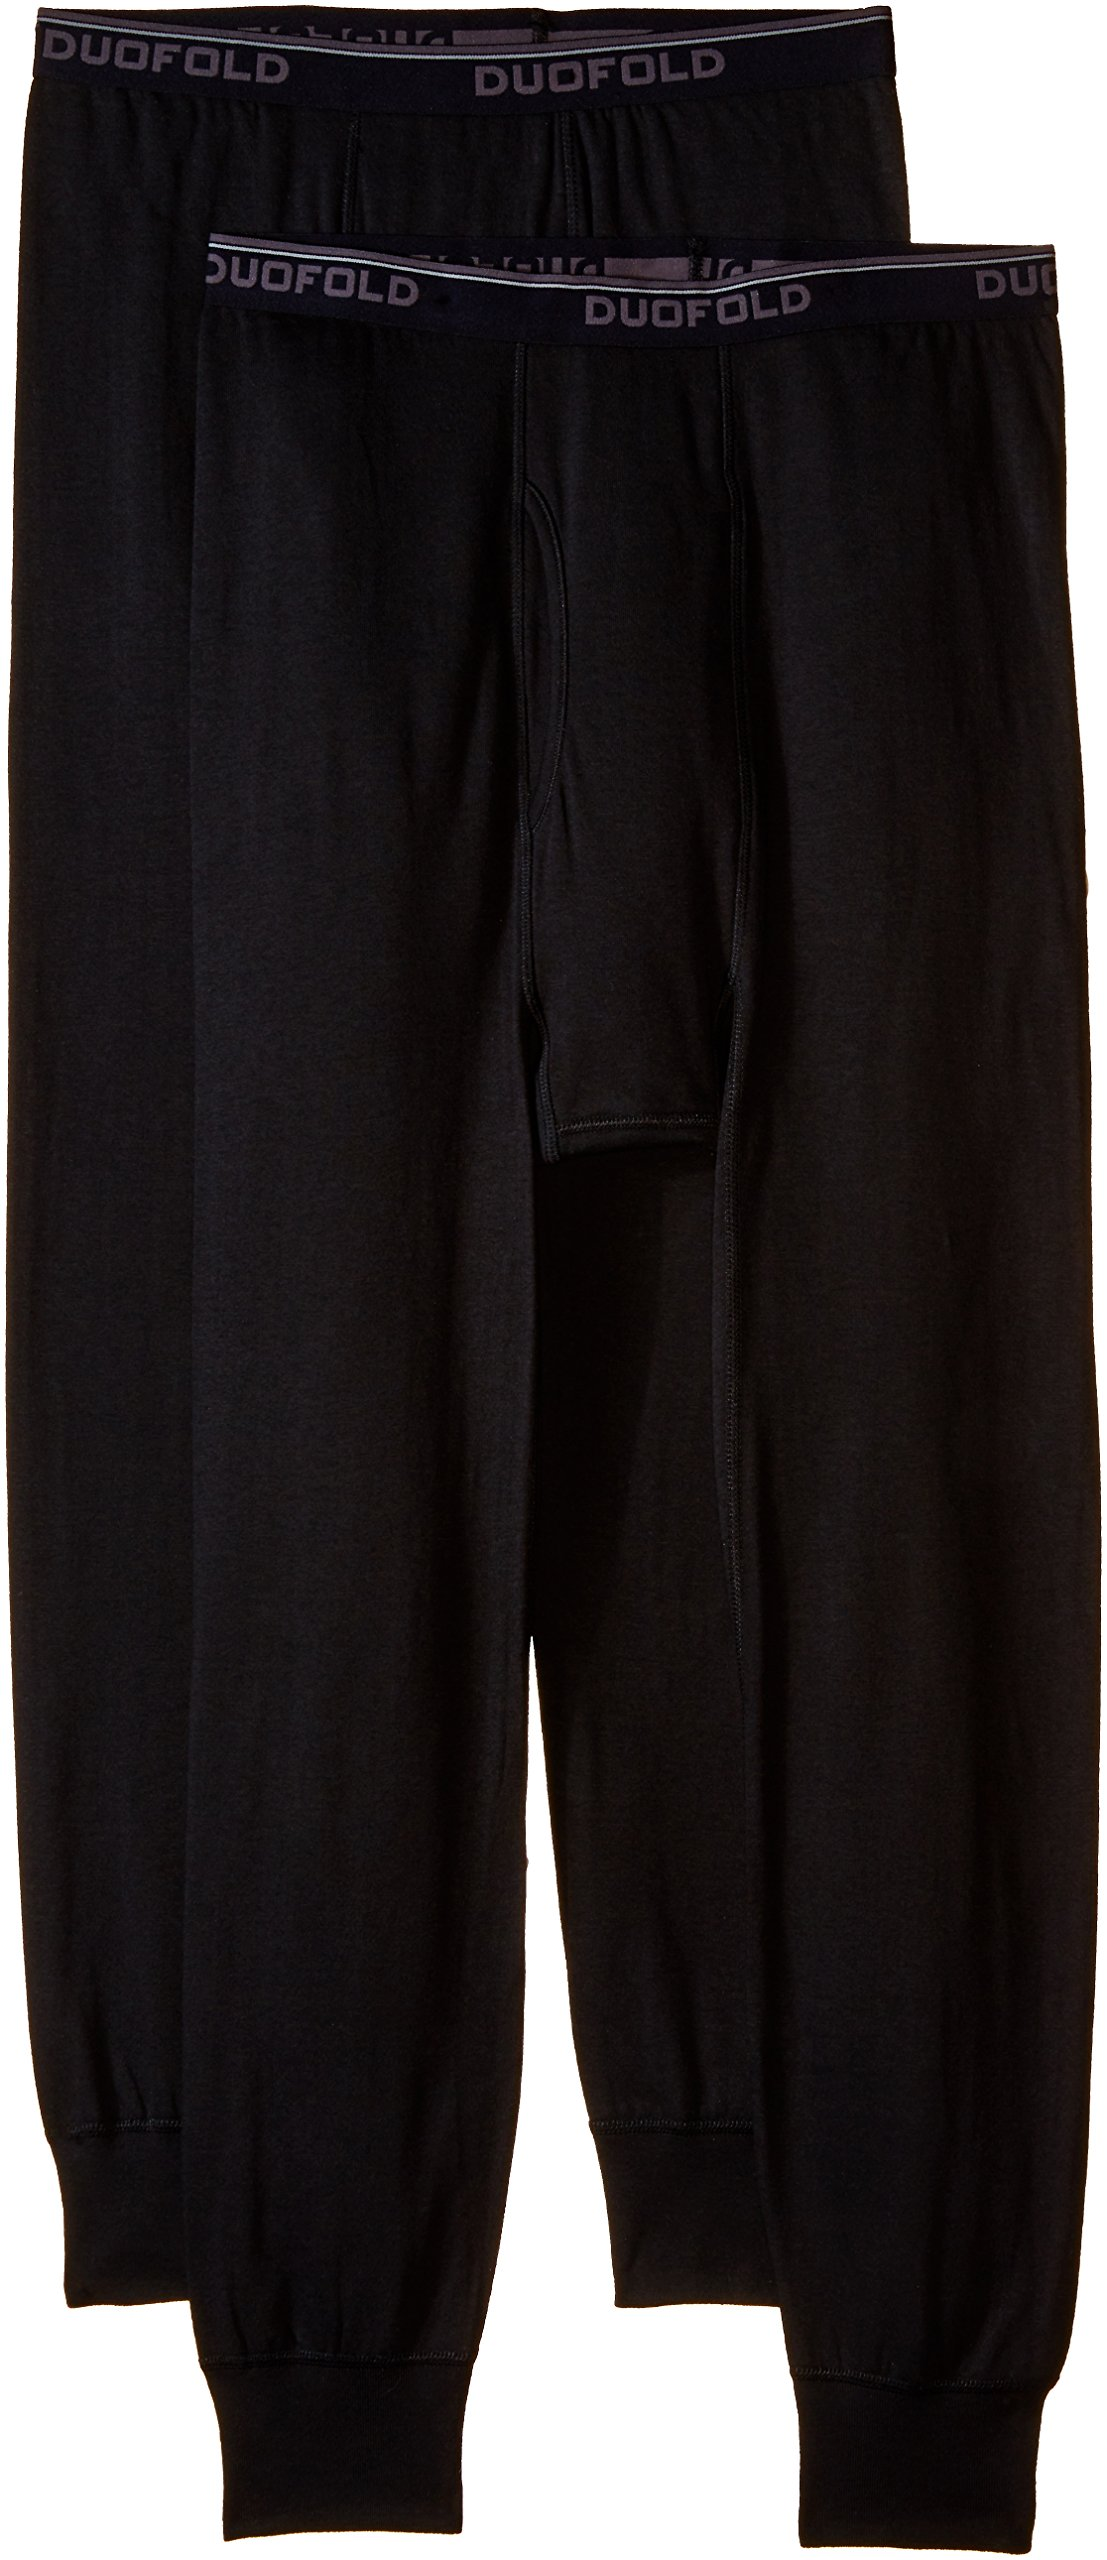 Duofold Men's Mid Weight Wicking Thermal Pant (Pack of 2), Black, Large